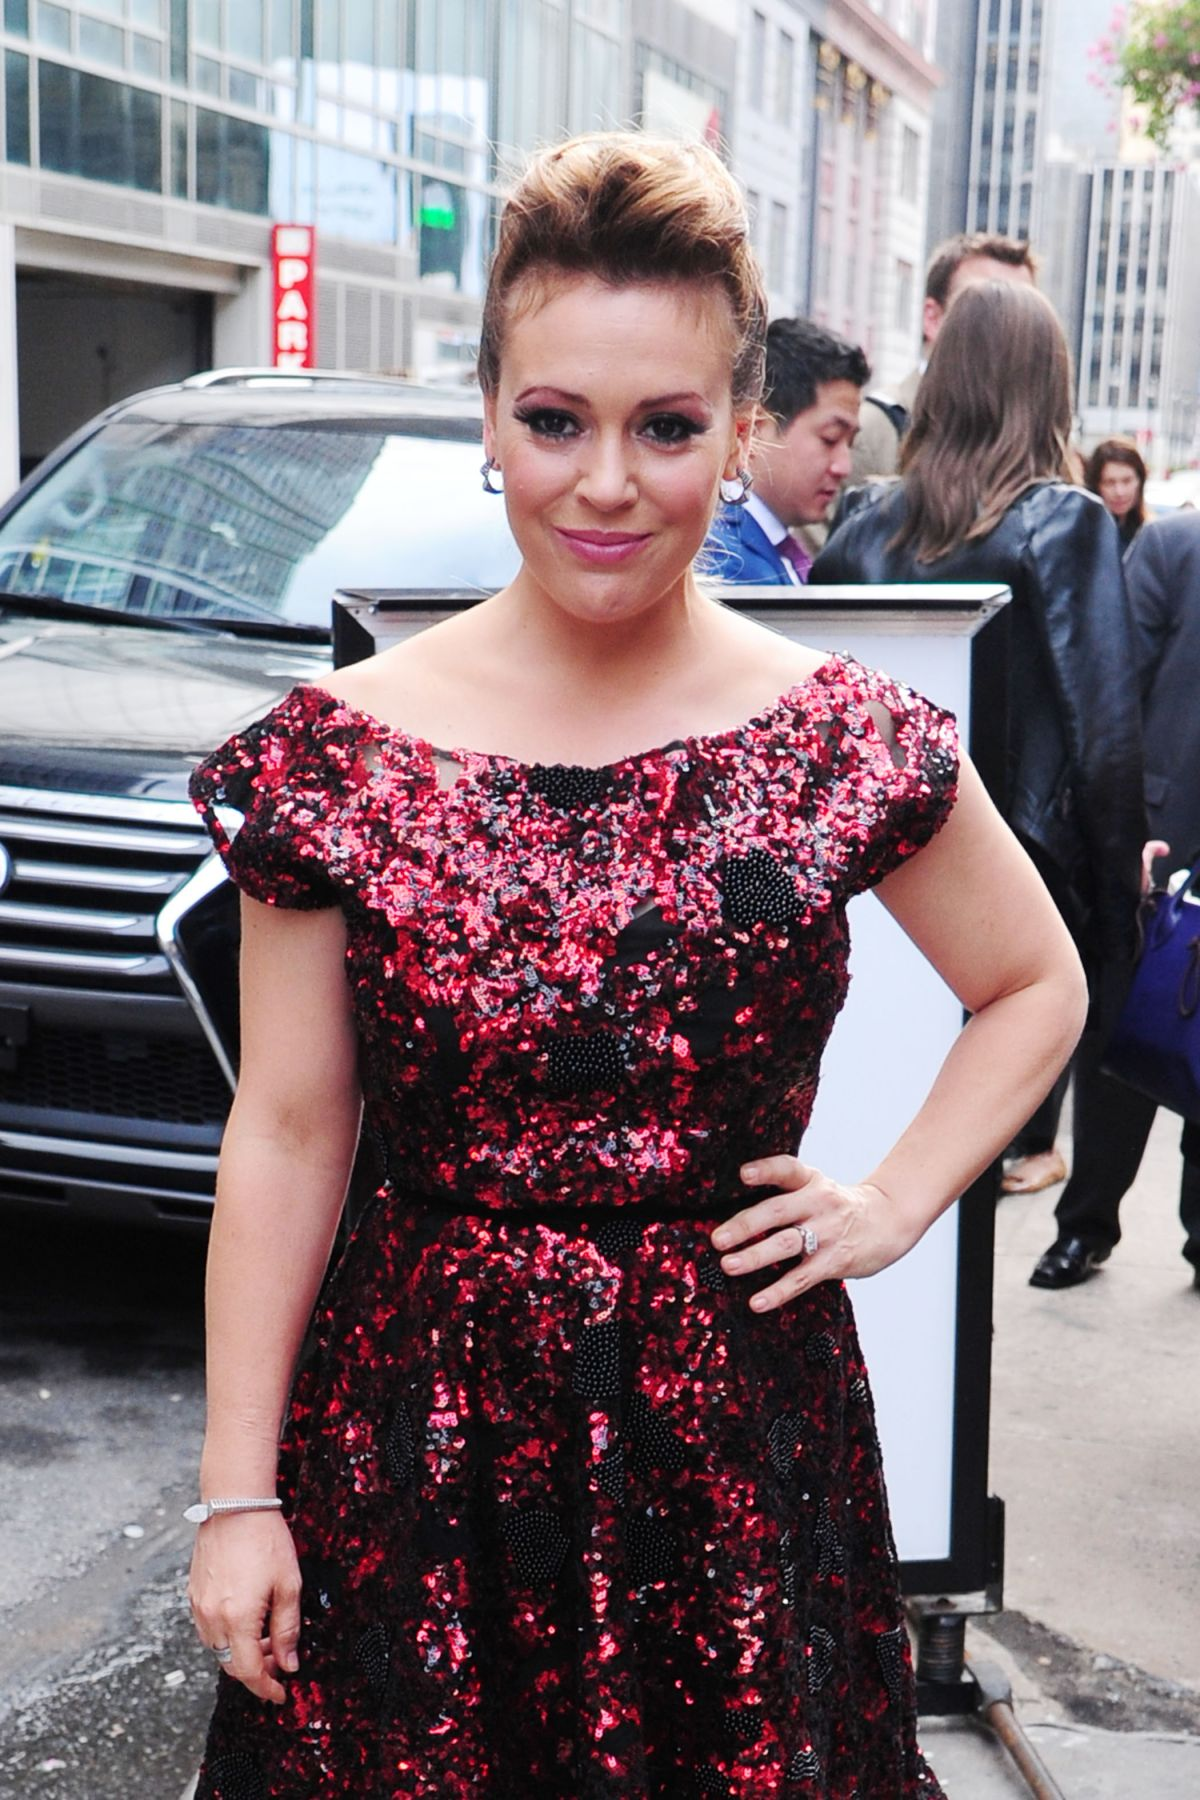 ALYSSA MILANO Out at New York Fashion Week in New York 09/11/2015